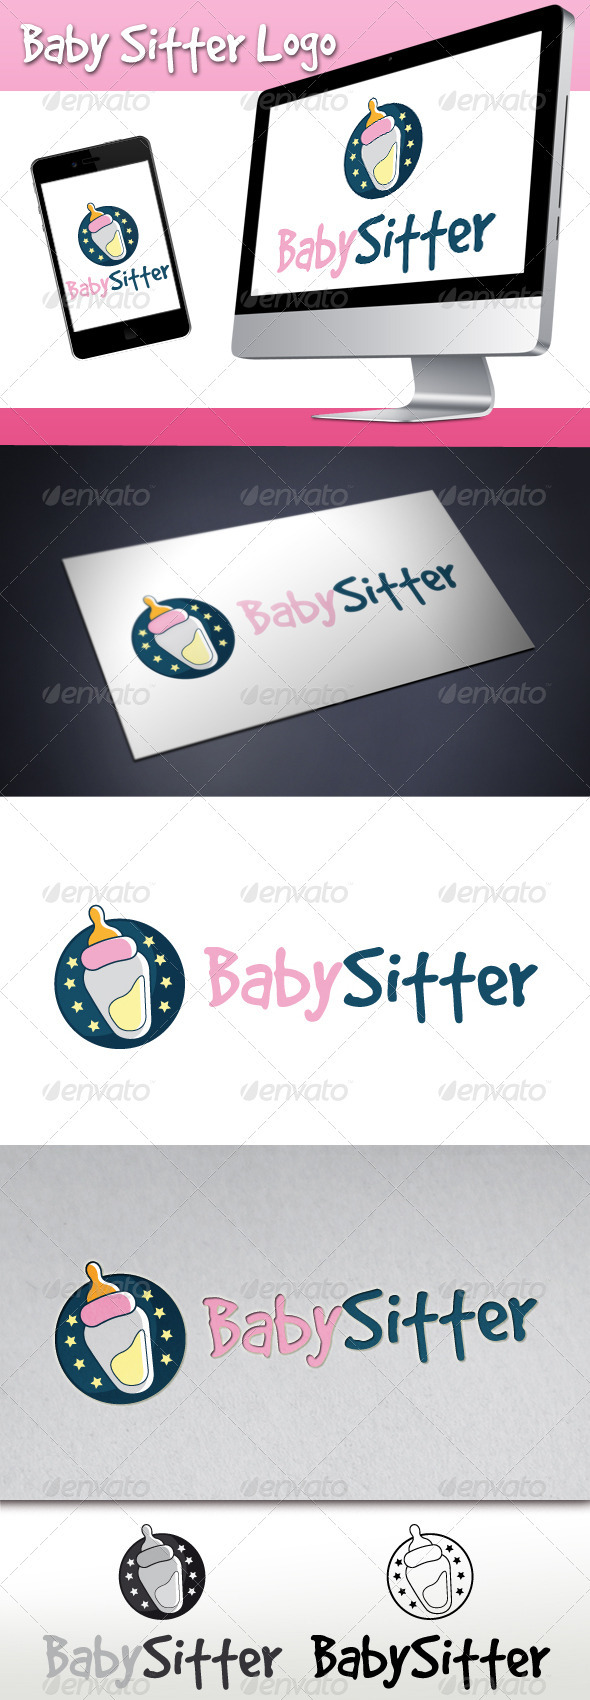 GraphicRiver Baby Sitter Logo 3336267